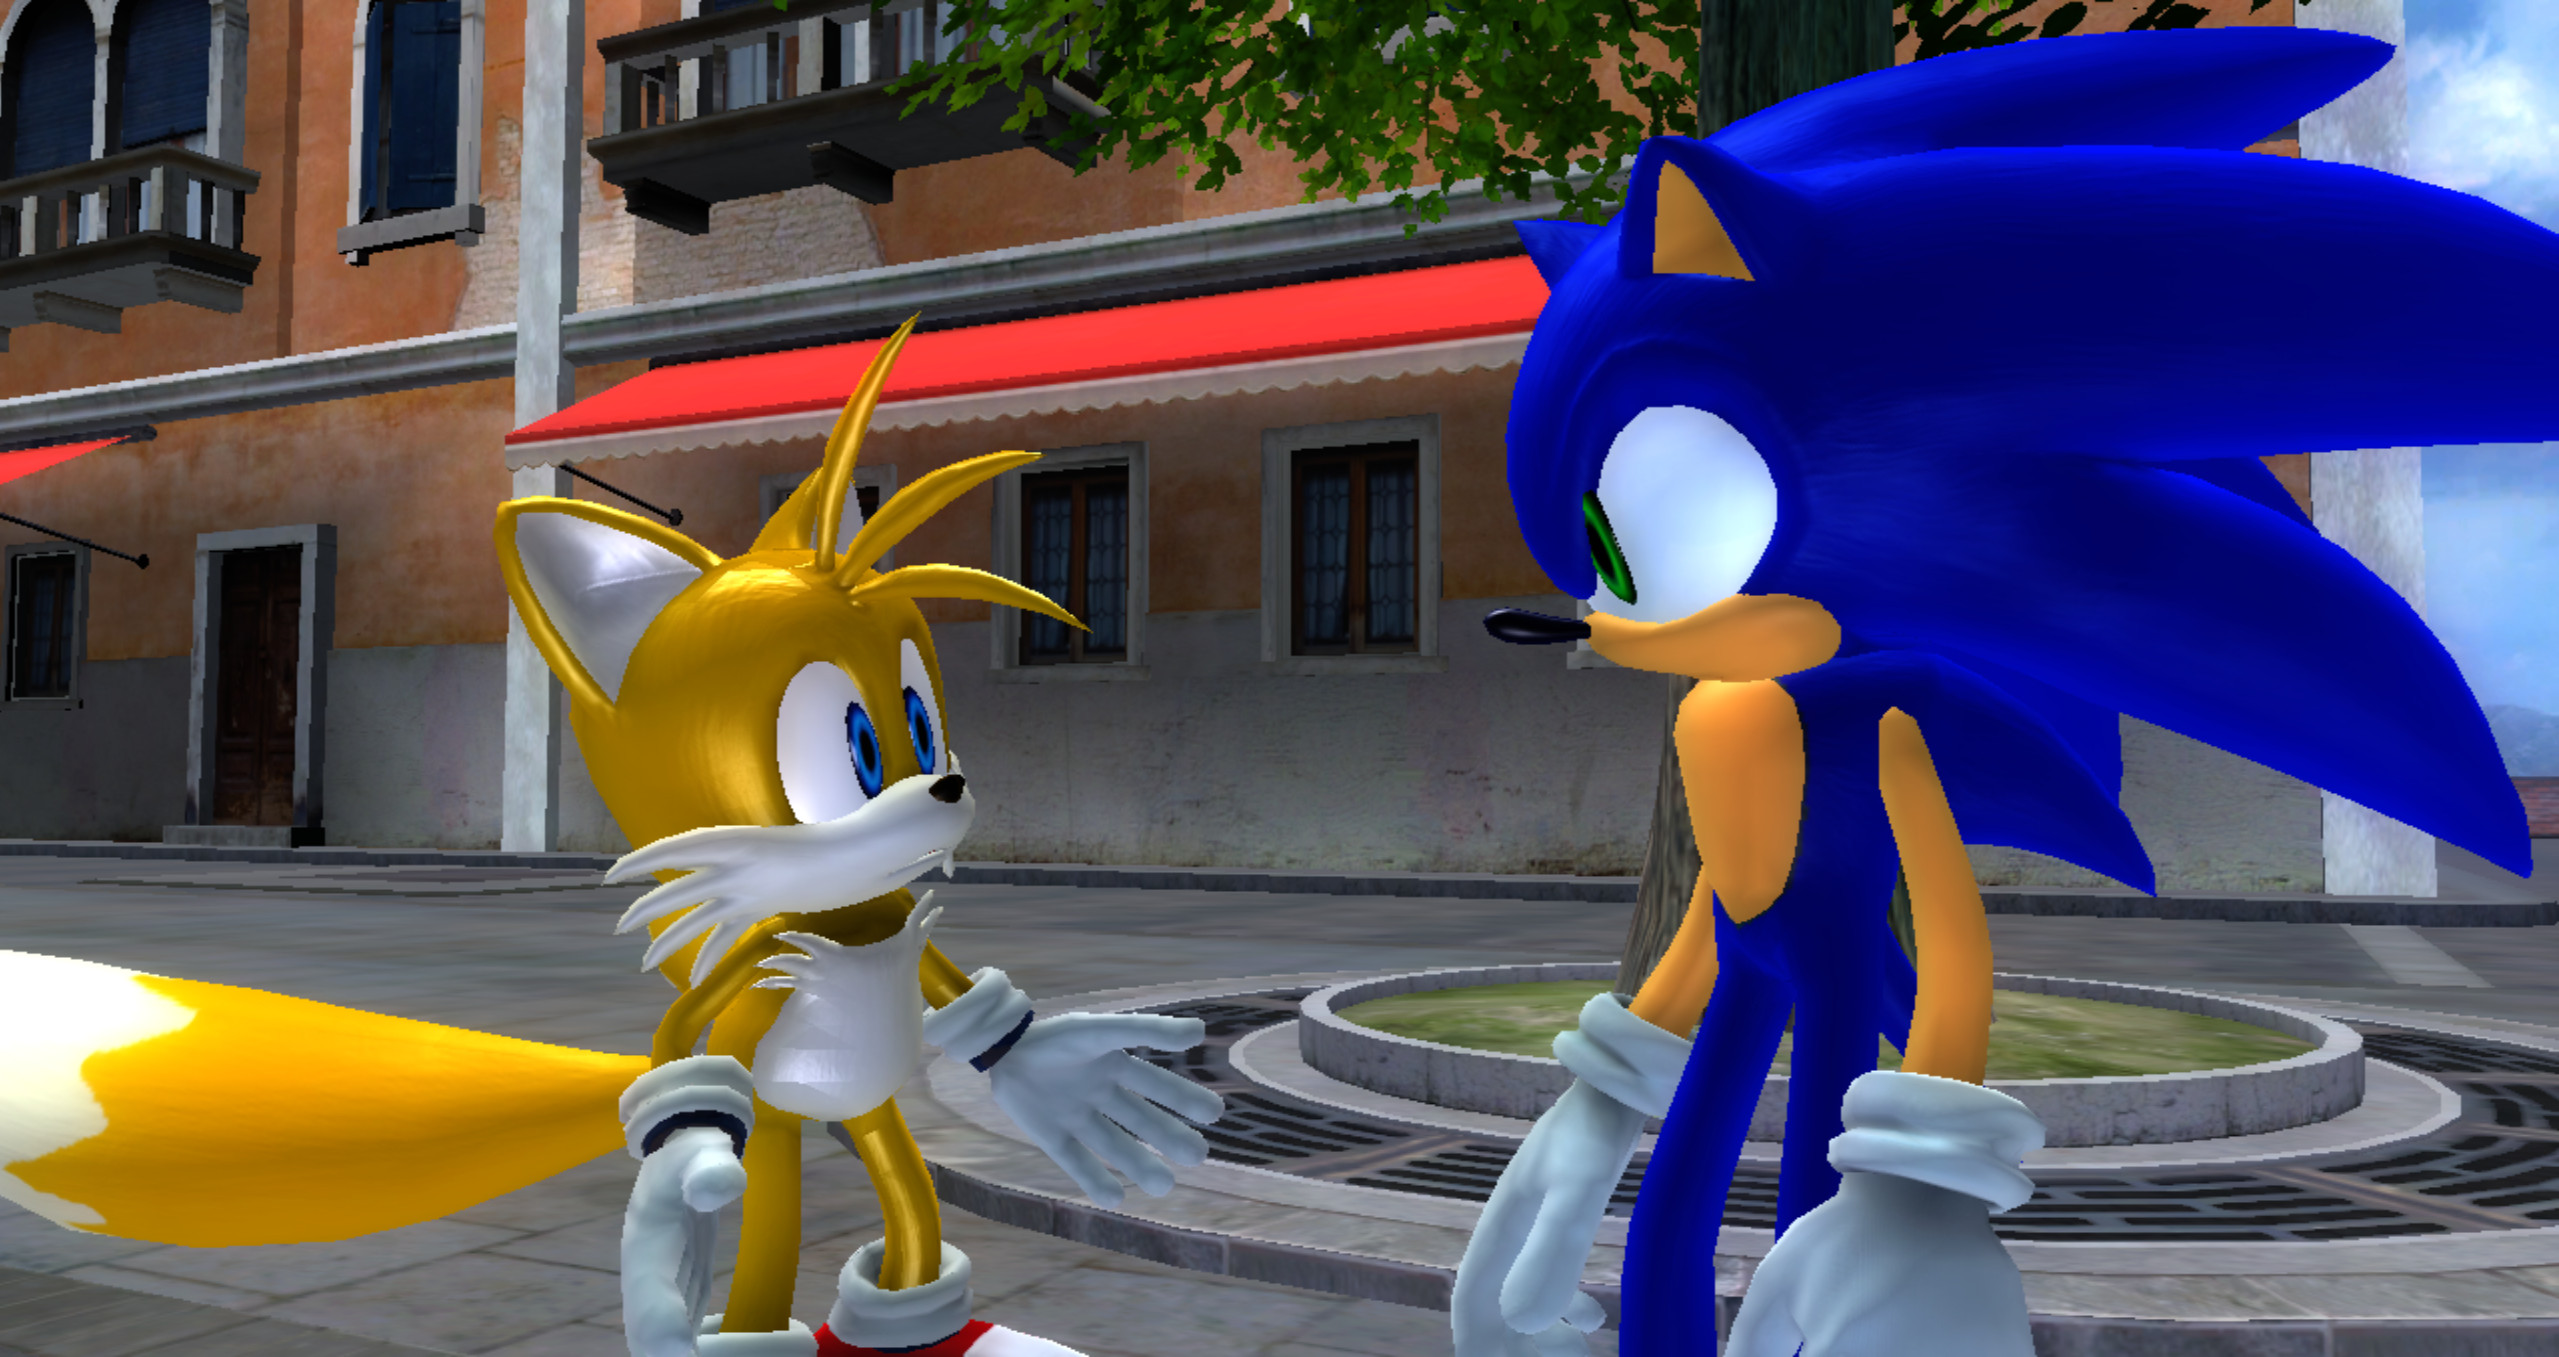 Better Sonic '06 (Thinking About New Name) [Sonic The